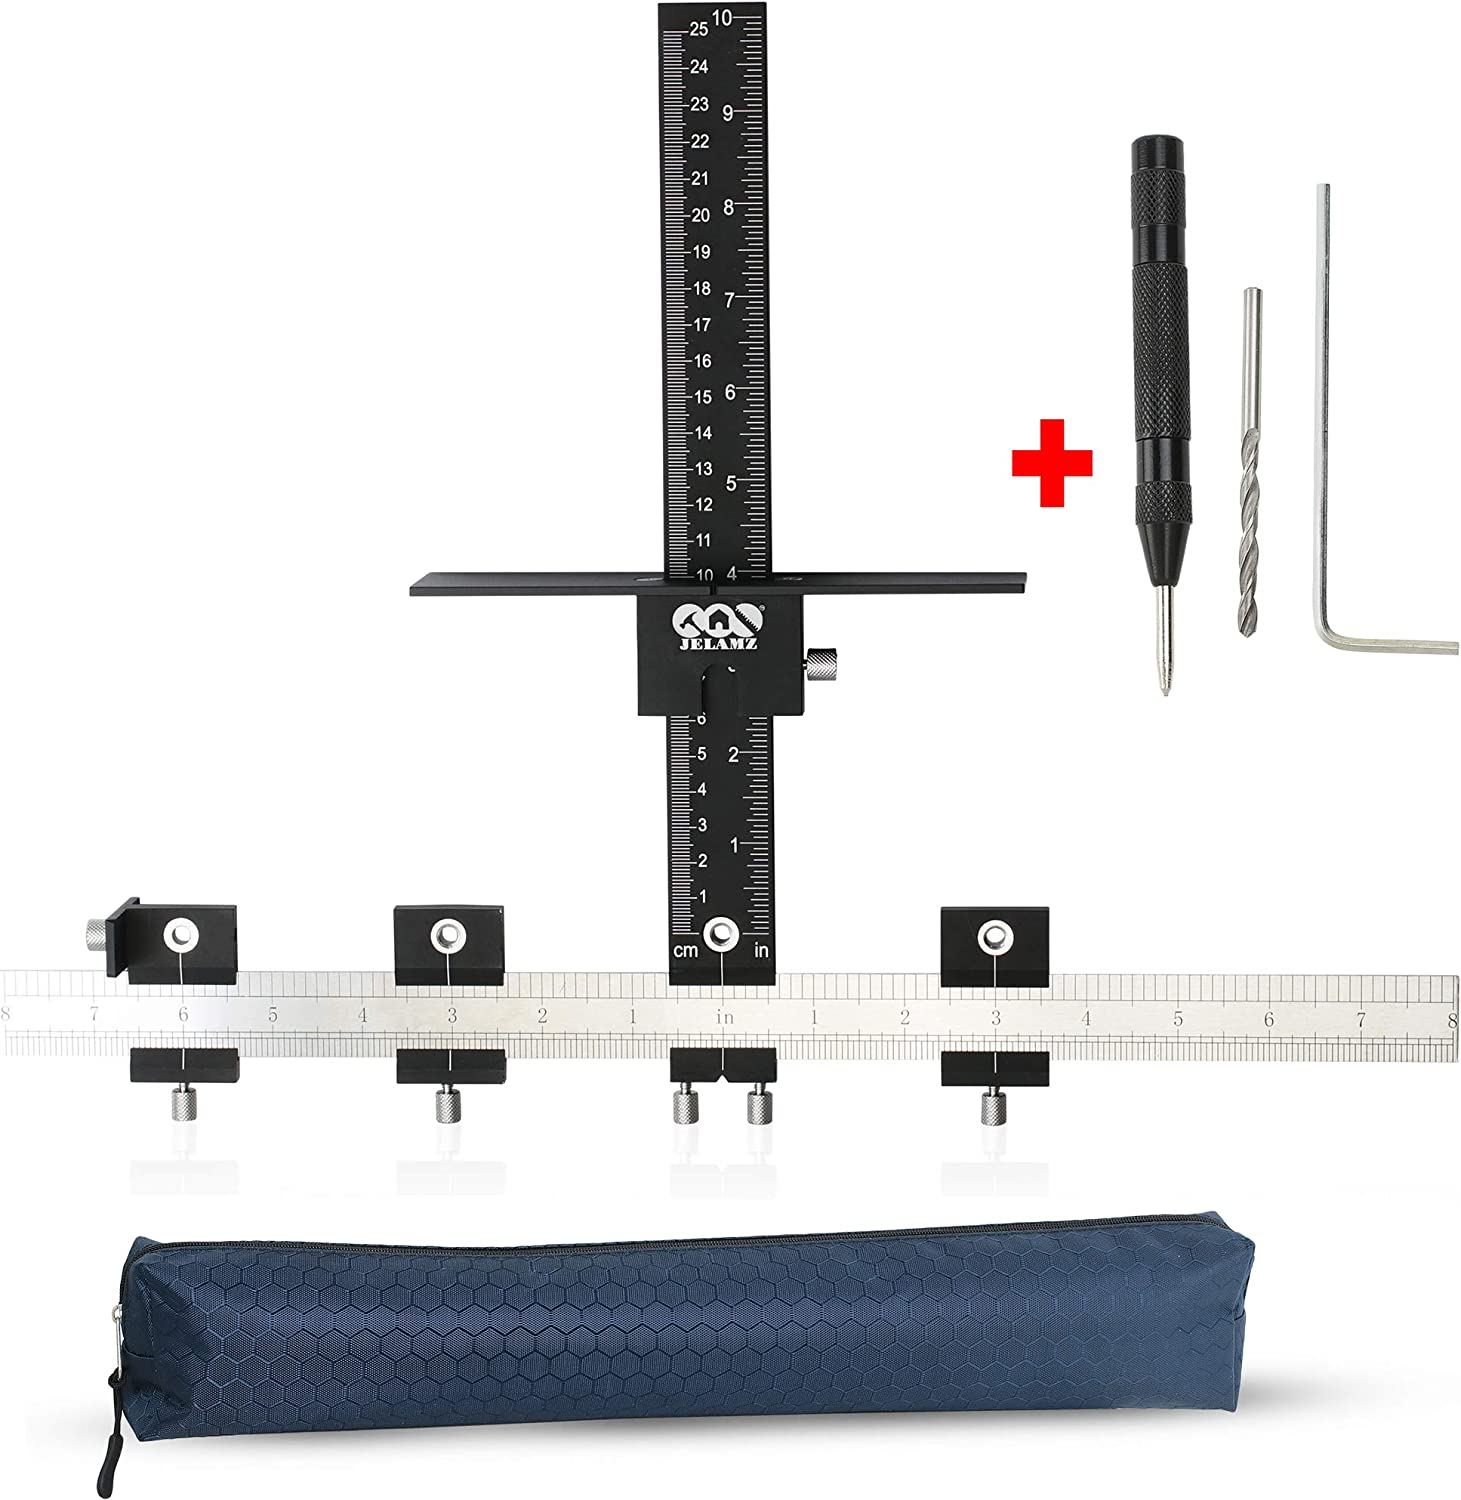 Fastest And Most Accurate Knob Pull Jig Wood Drilling Guide Sleeve Templates Tool Cabinet Hardware Jig Aluminum Alloy for Drawer Knobs Handles Inch Metric Measurement